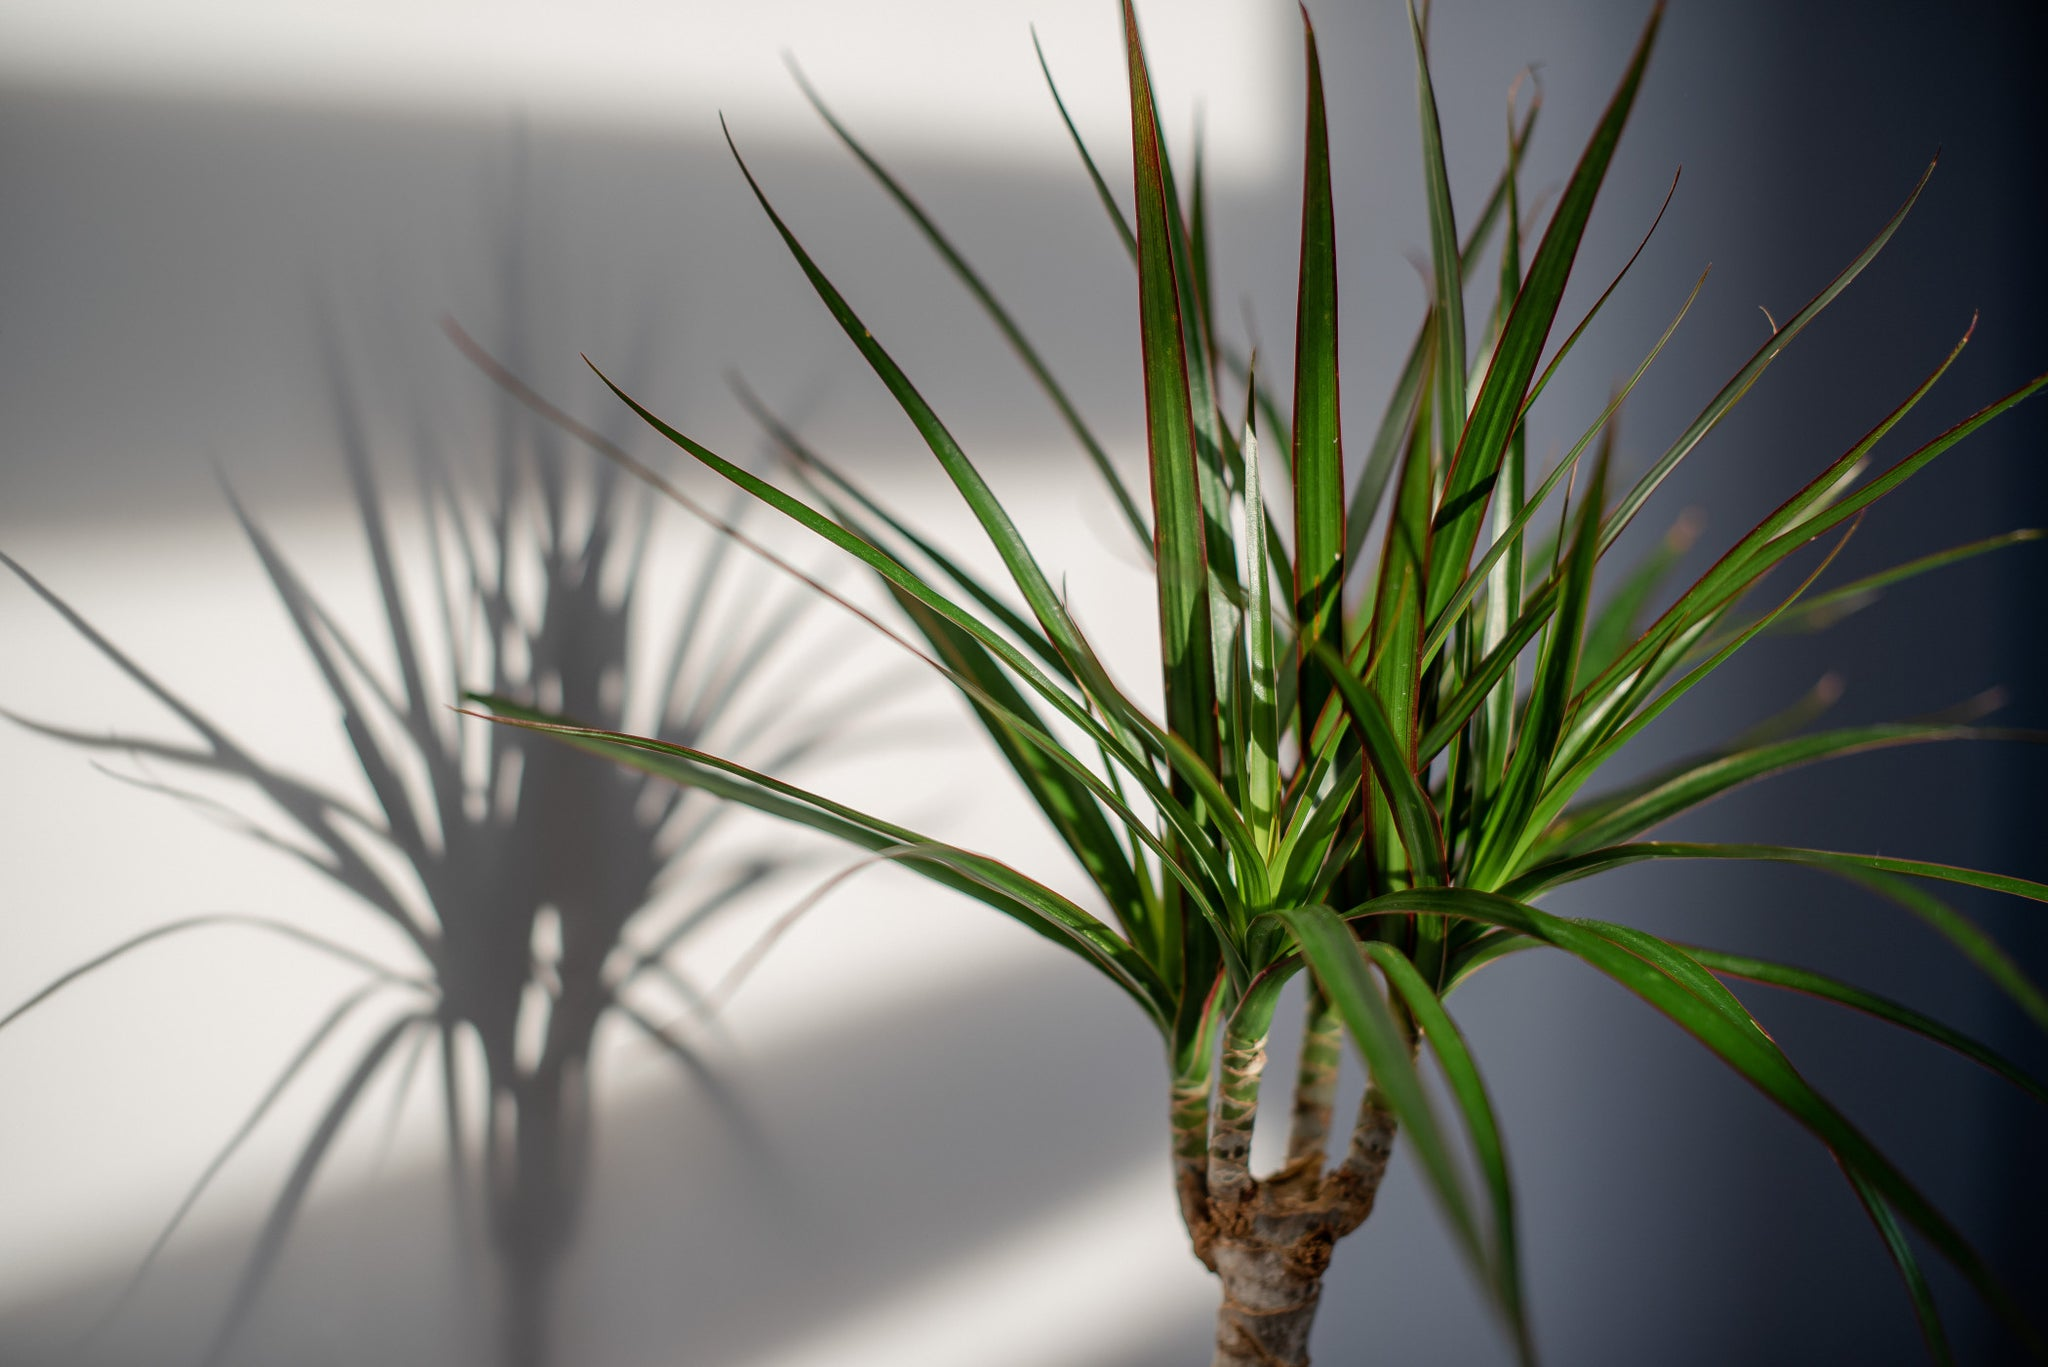 A corn plant (Dracaena) with the lighting casting a shadow of the plant on a white wall behind it.